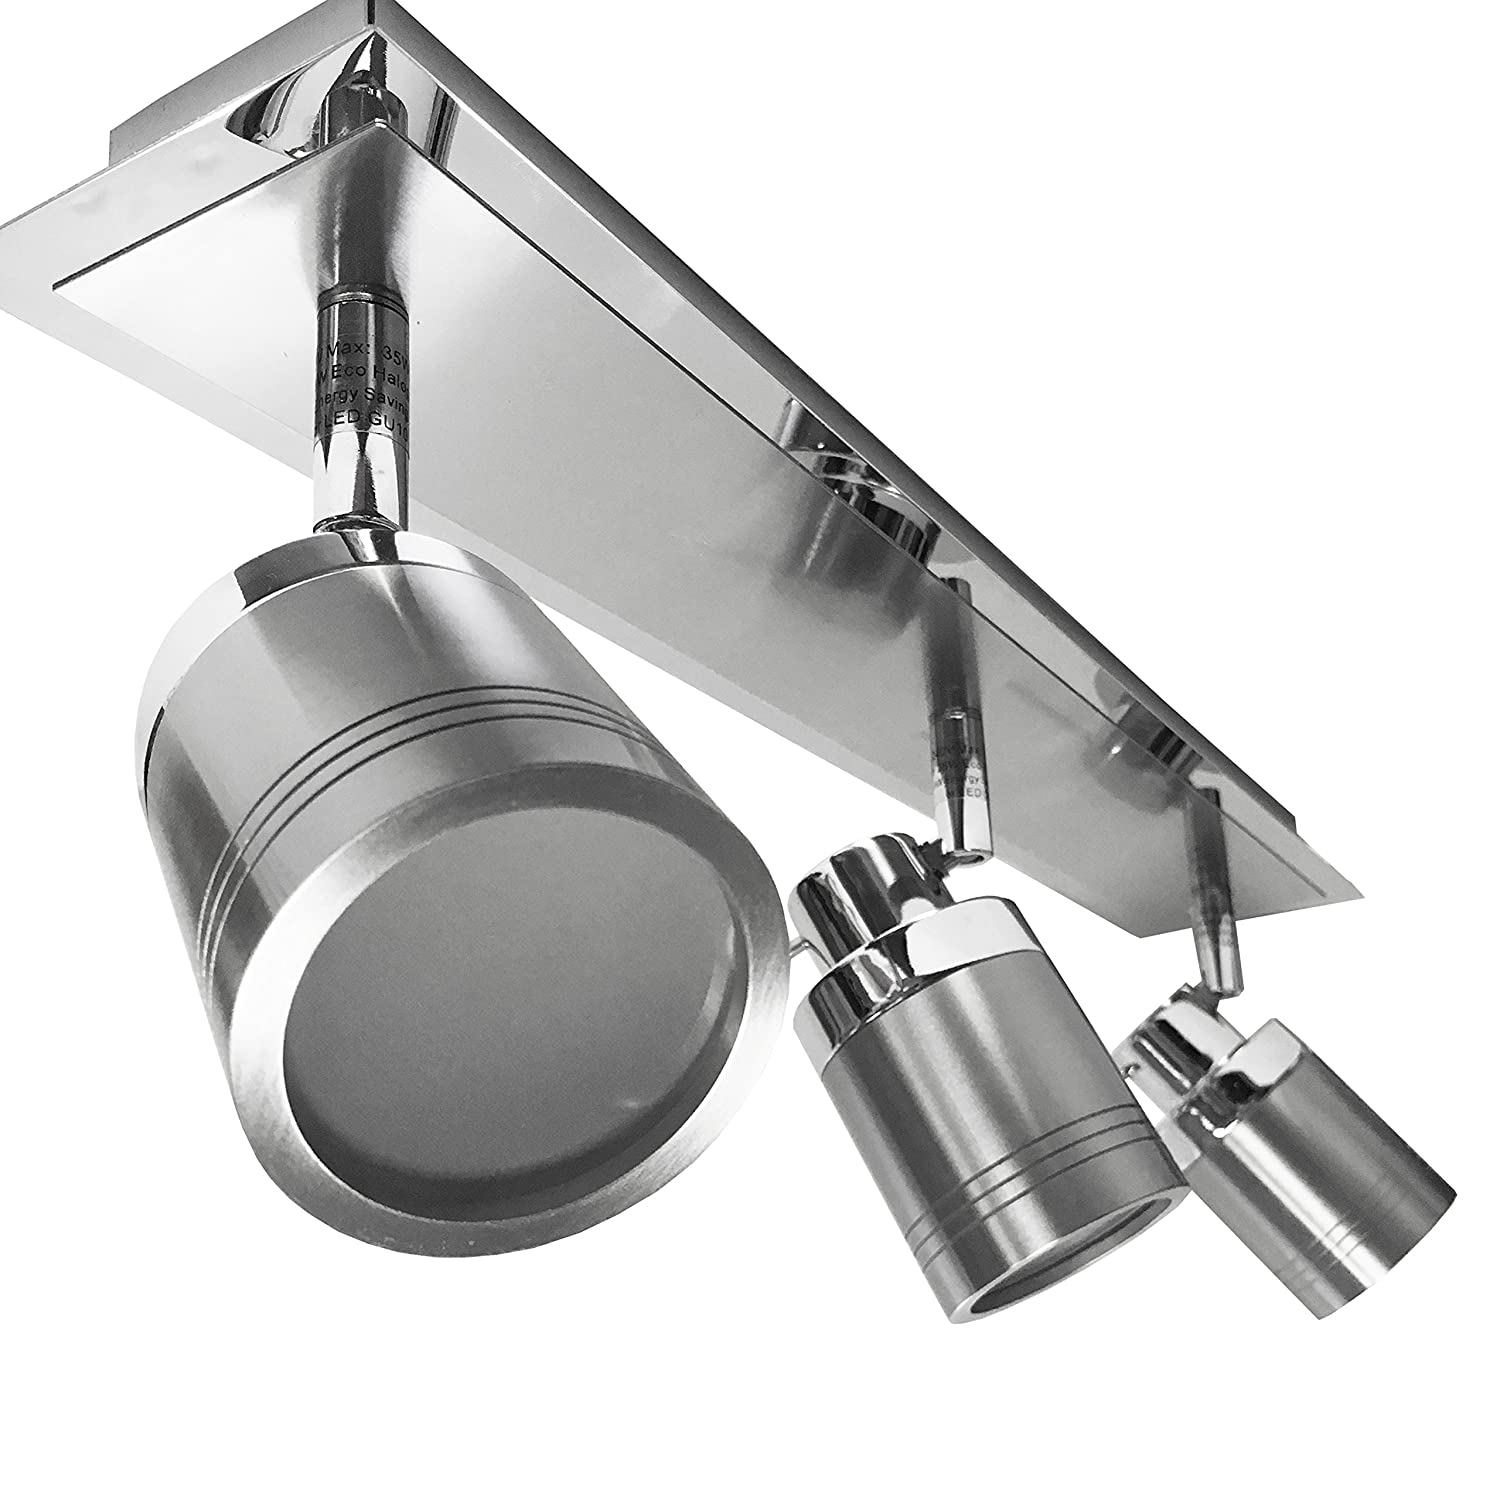 Directional 3 Head ~ Bar Fitting ~ Chrome and Brushed Chrome ~ IP44 Rated ~ Spotlight ~ Suitable for Bathrooms (Bar Fitting) PowerSave®